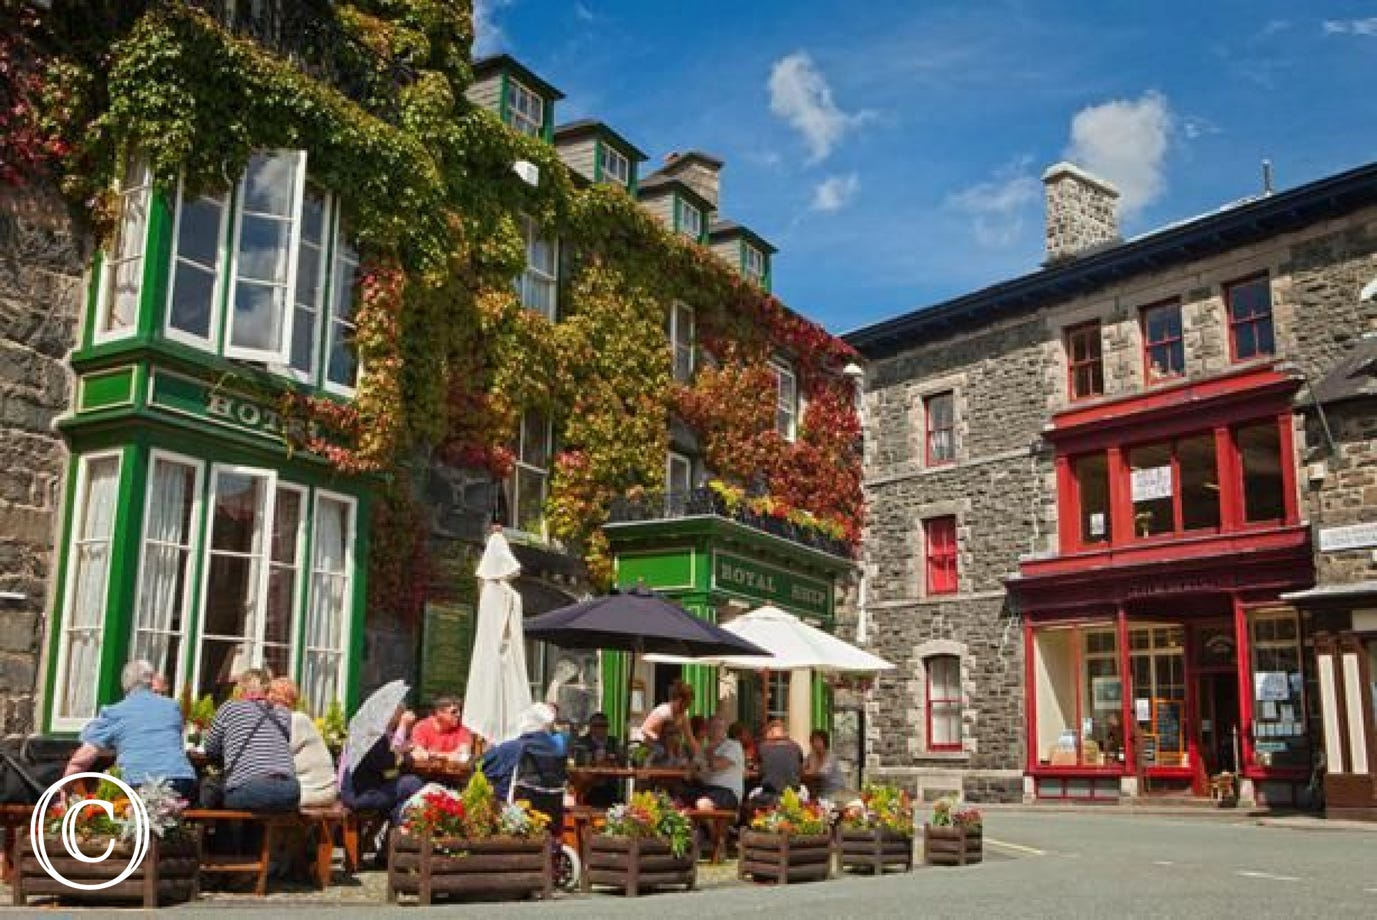 Plenty of shops, pubs & restaurants 2 miles up the road in Dolgellau